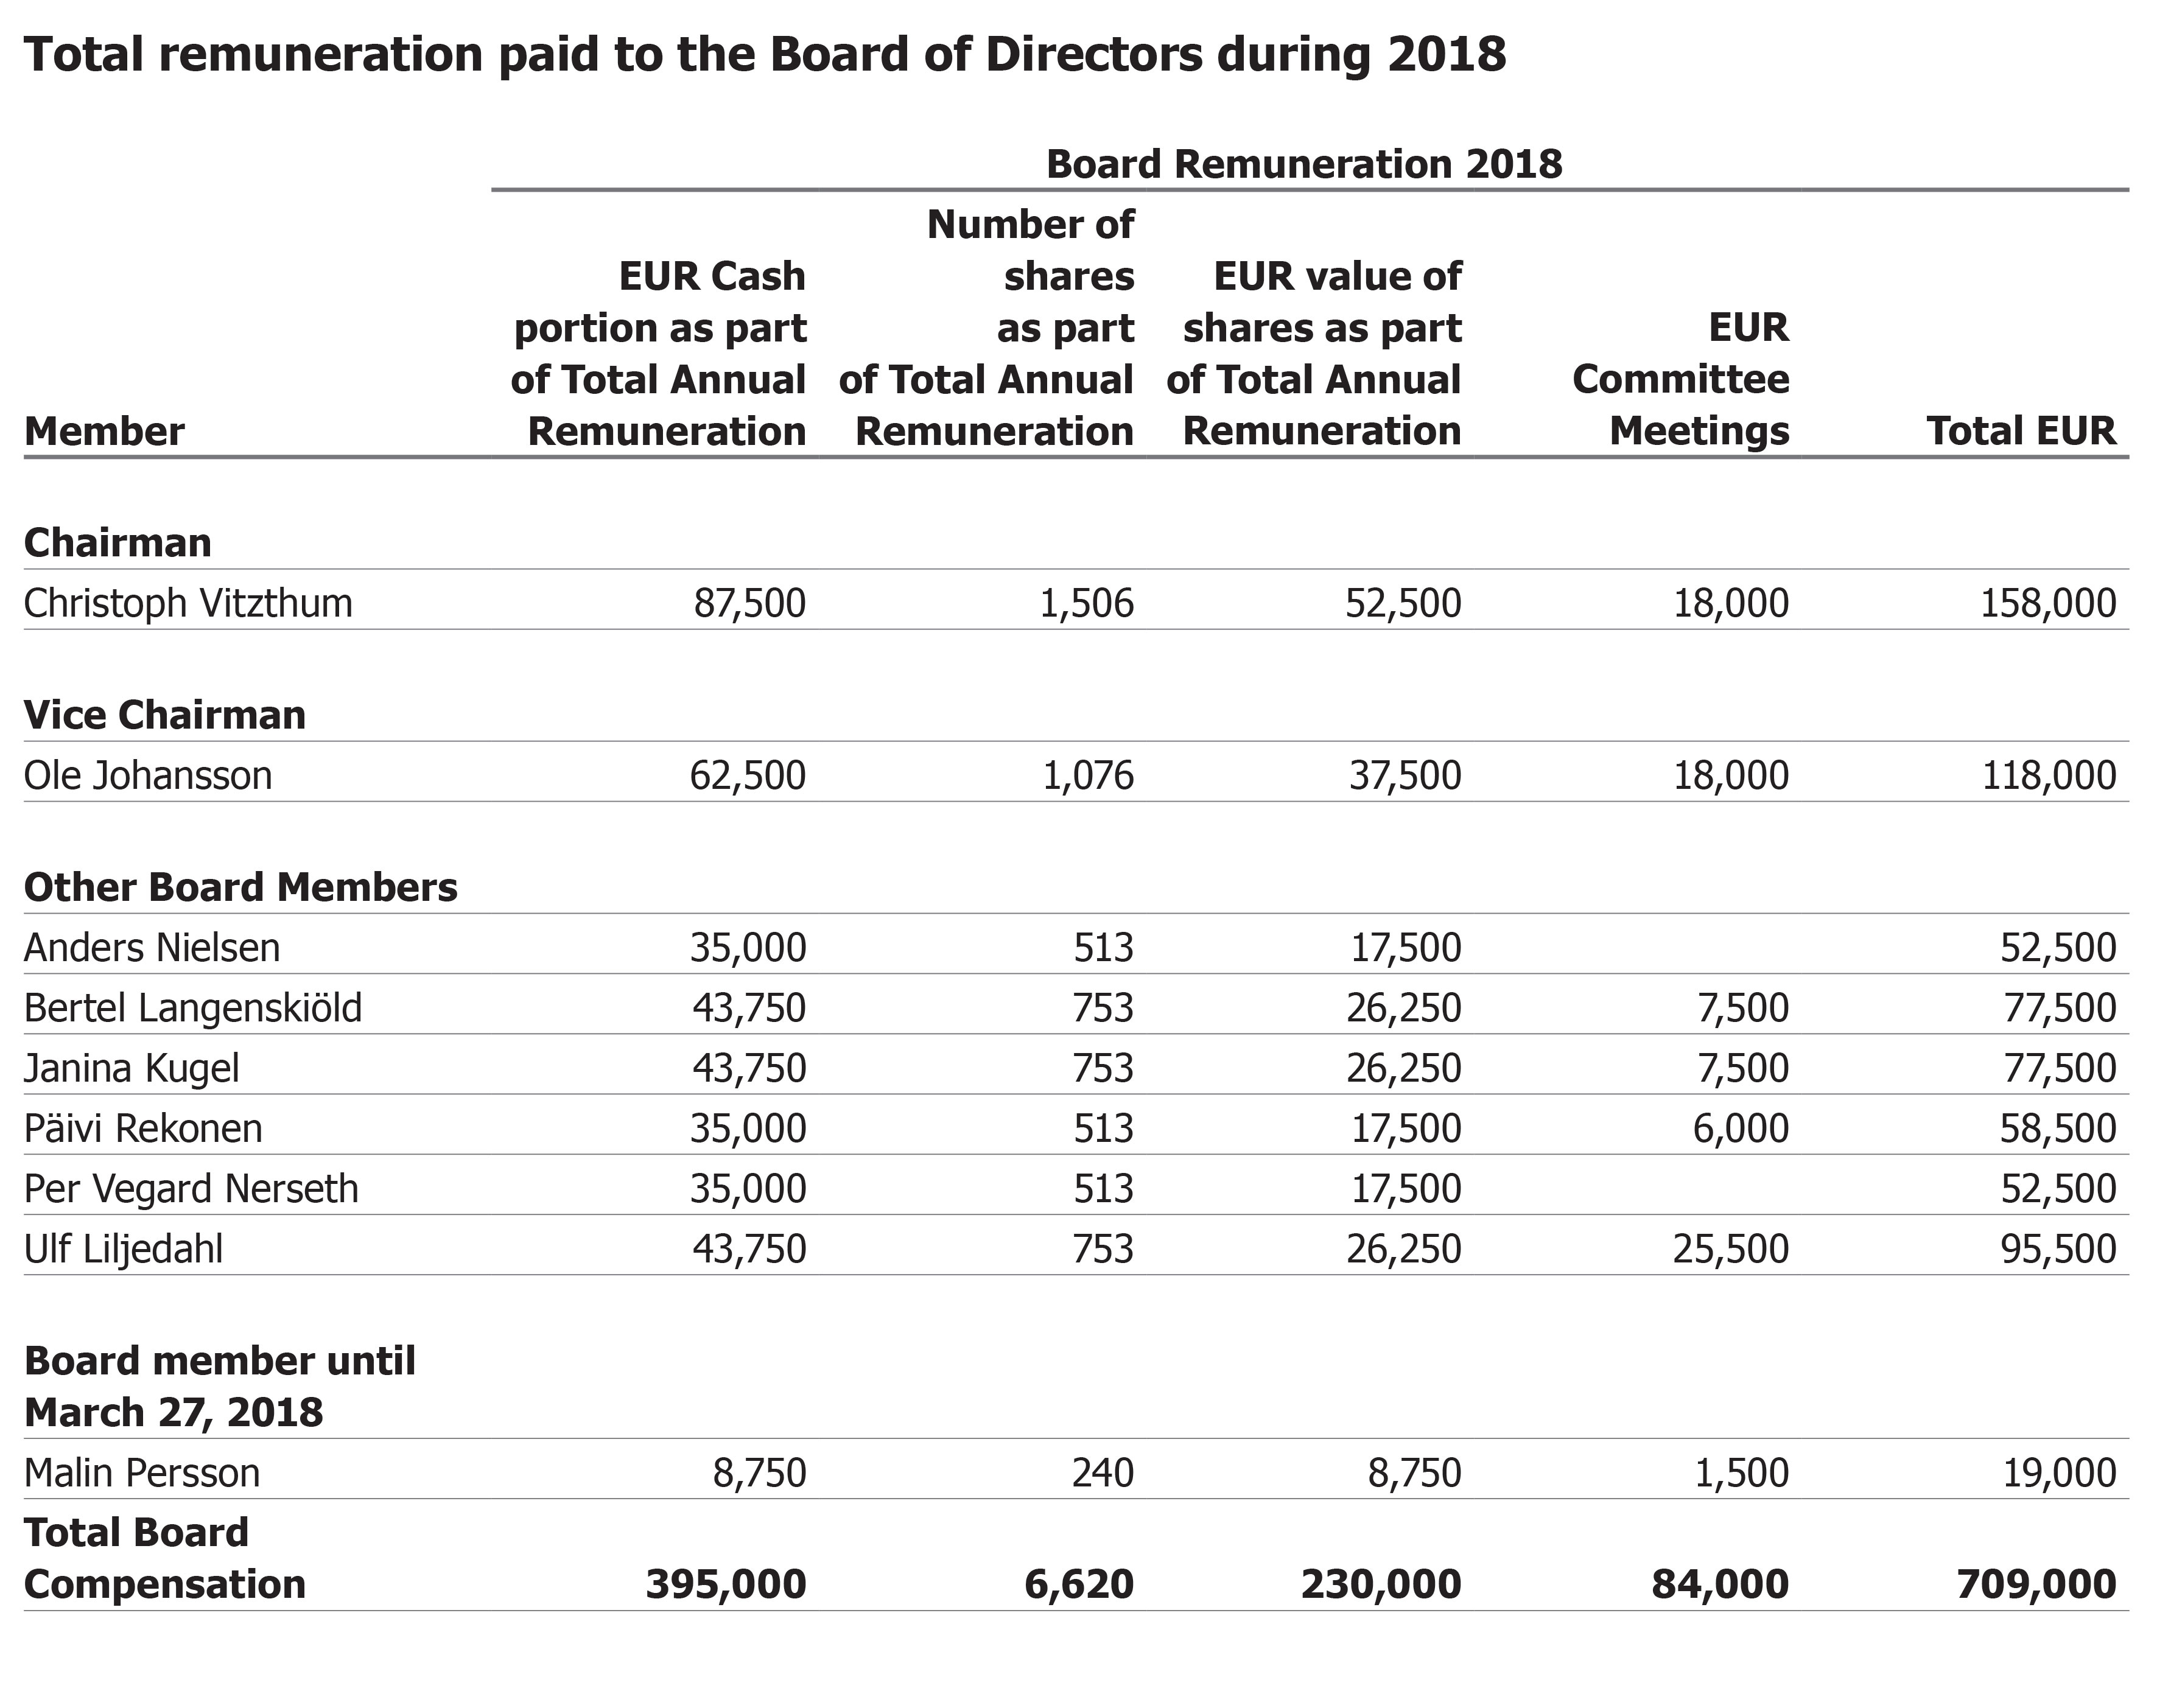 Total remuneration paid to the board of directors